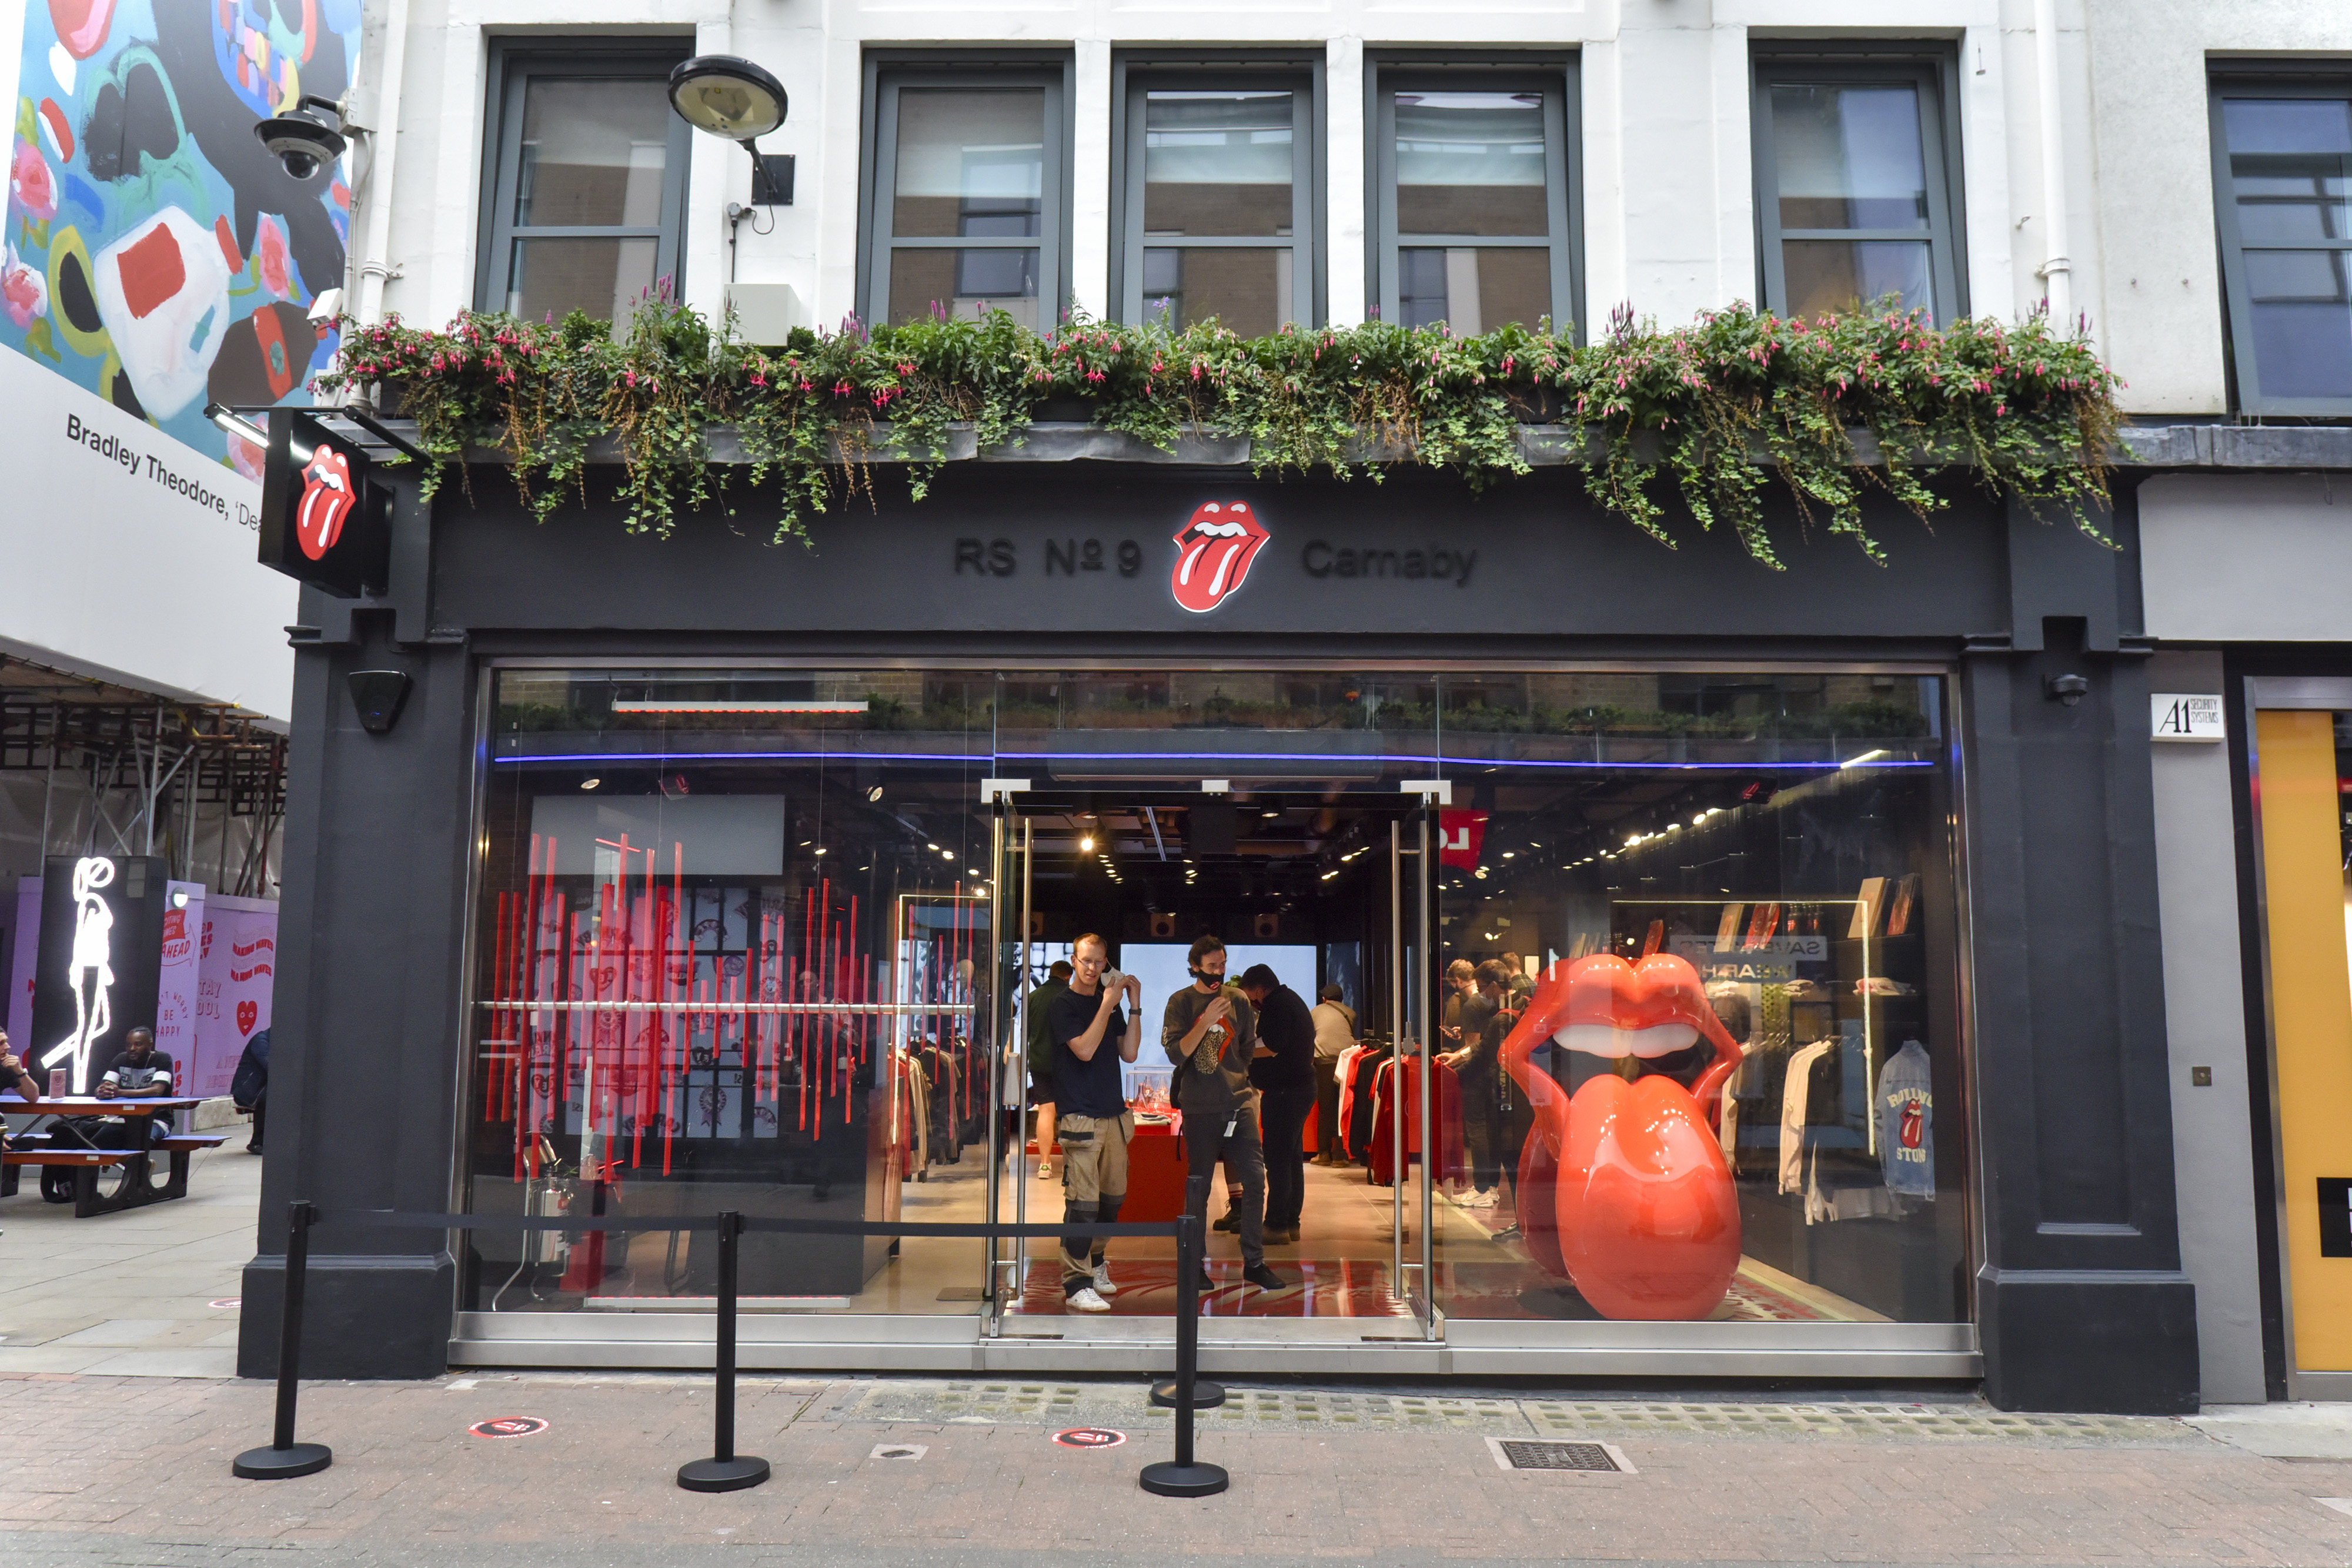 The worlds first permanent Rolling Stones store has